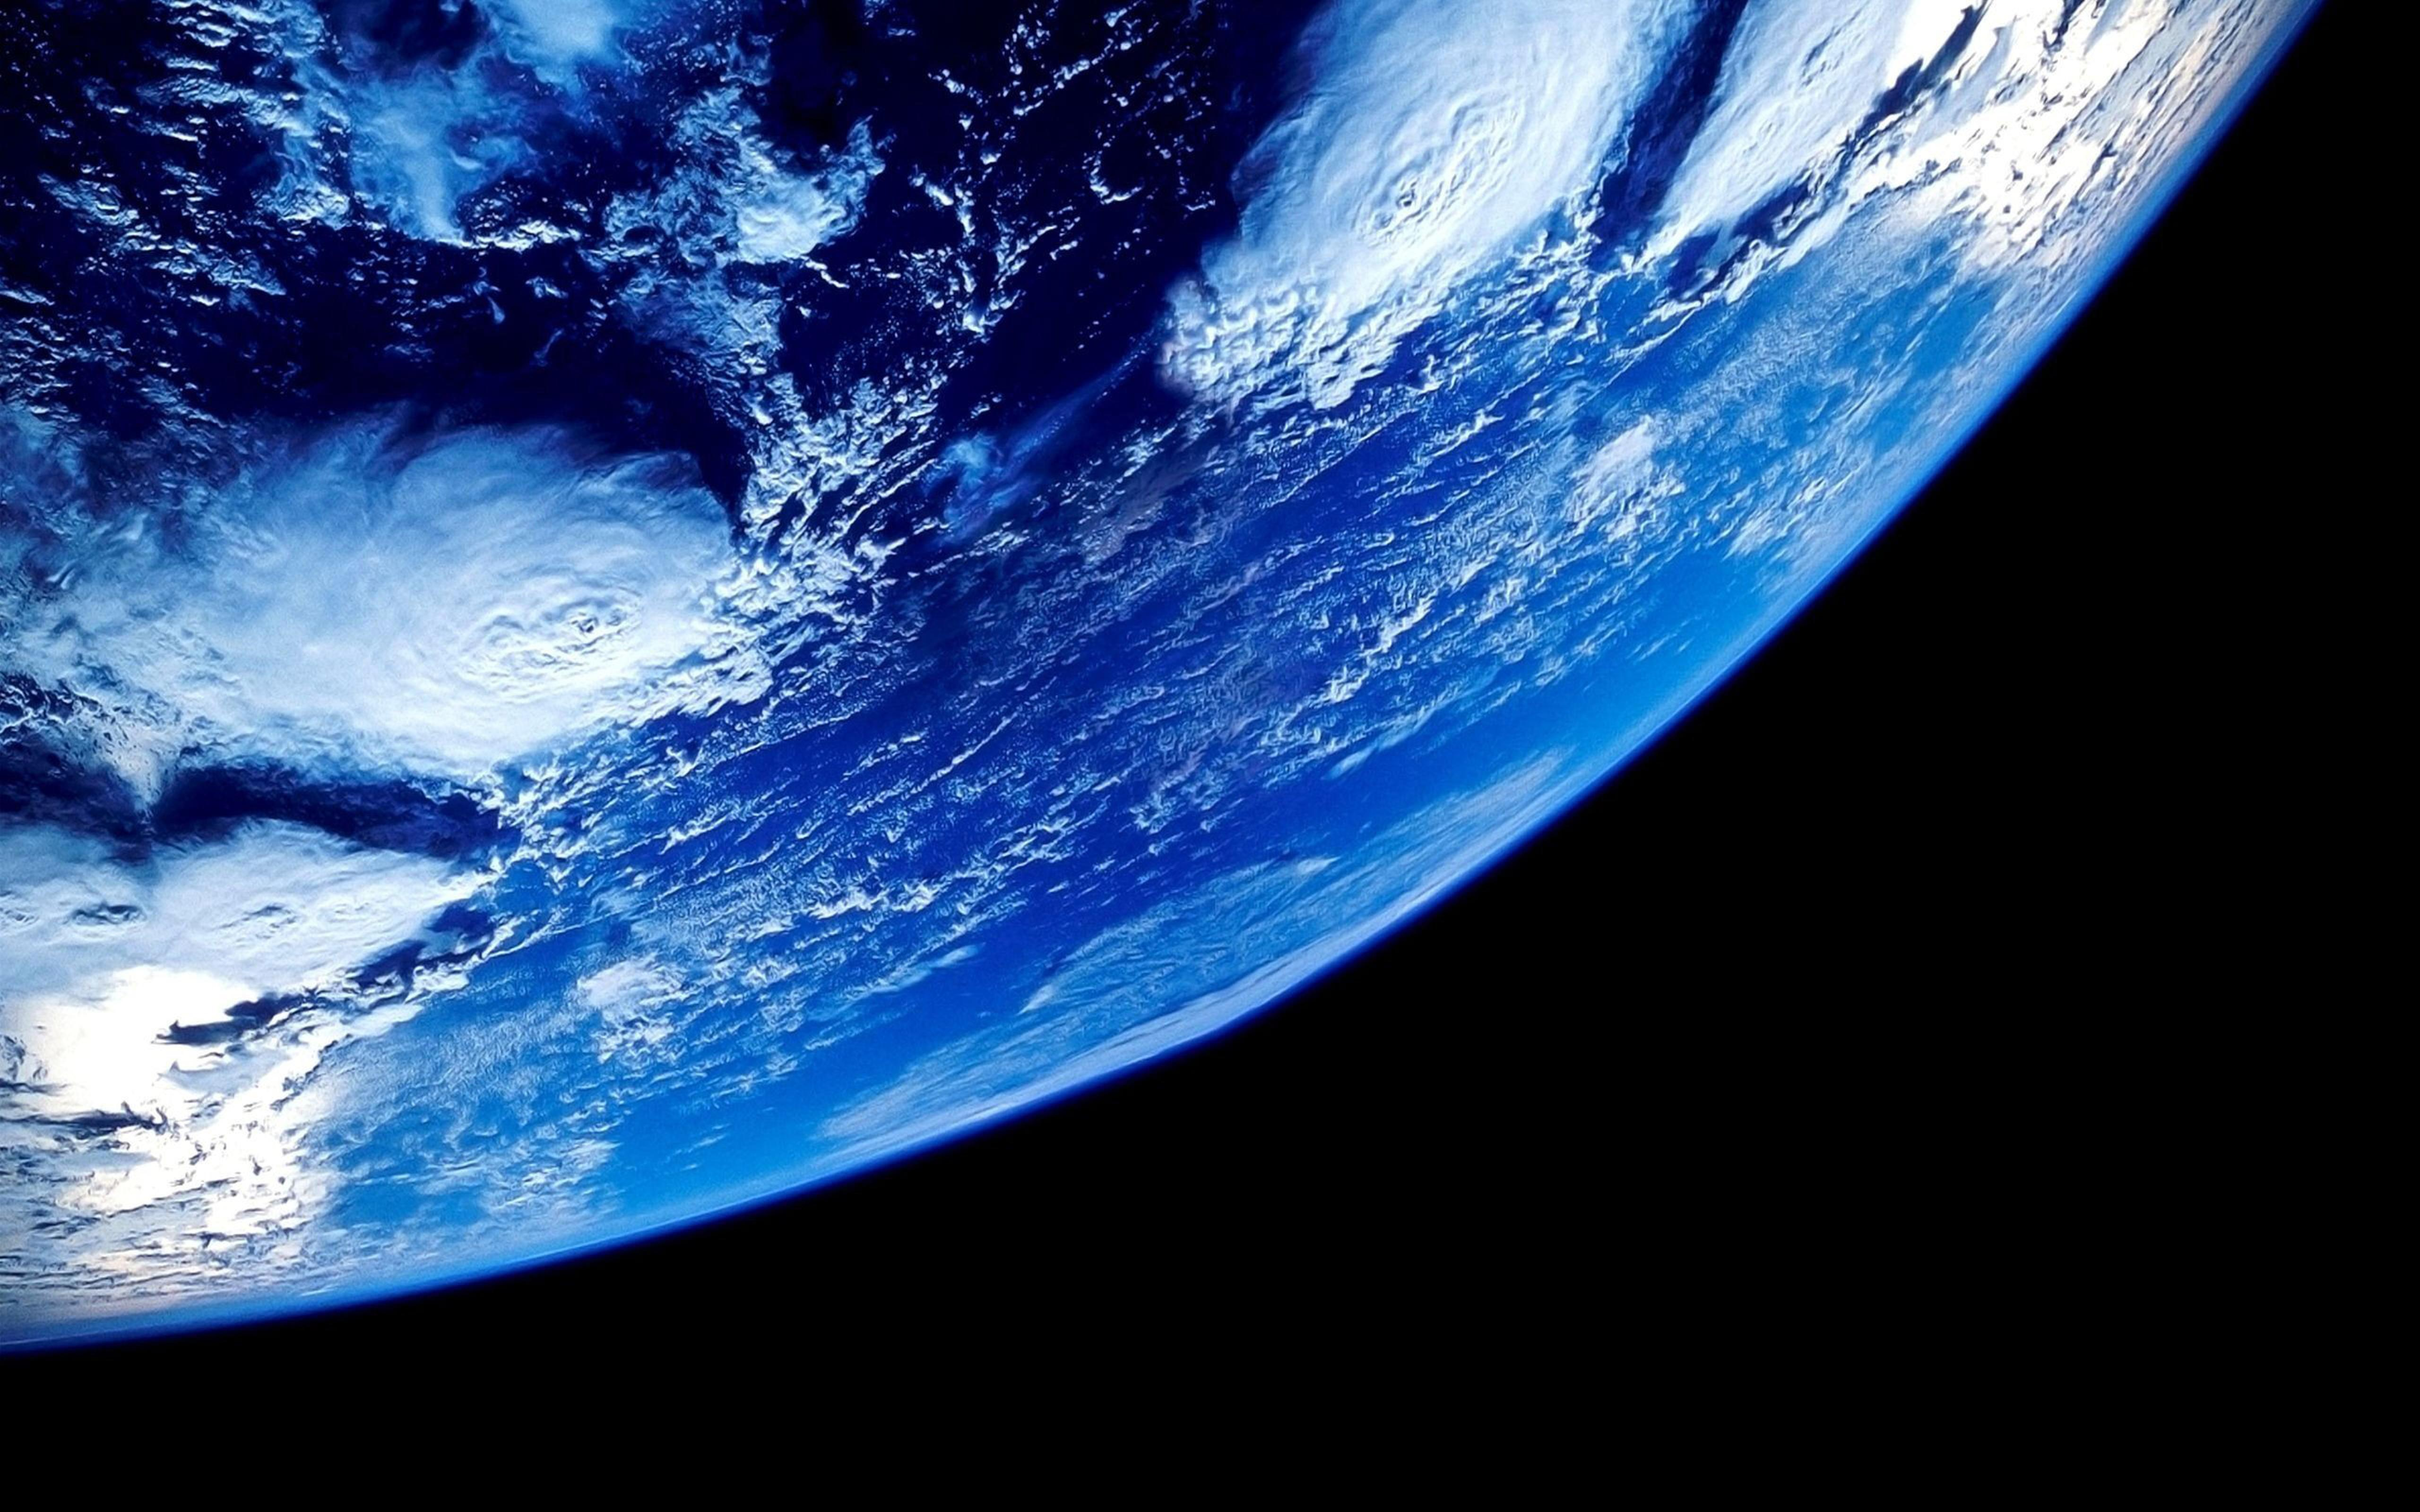 Earth Seen From Space HD Wallpaper Download 5120x3200